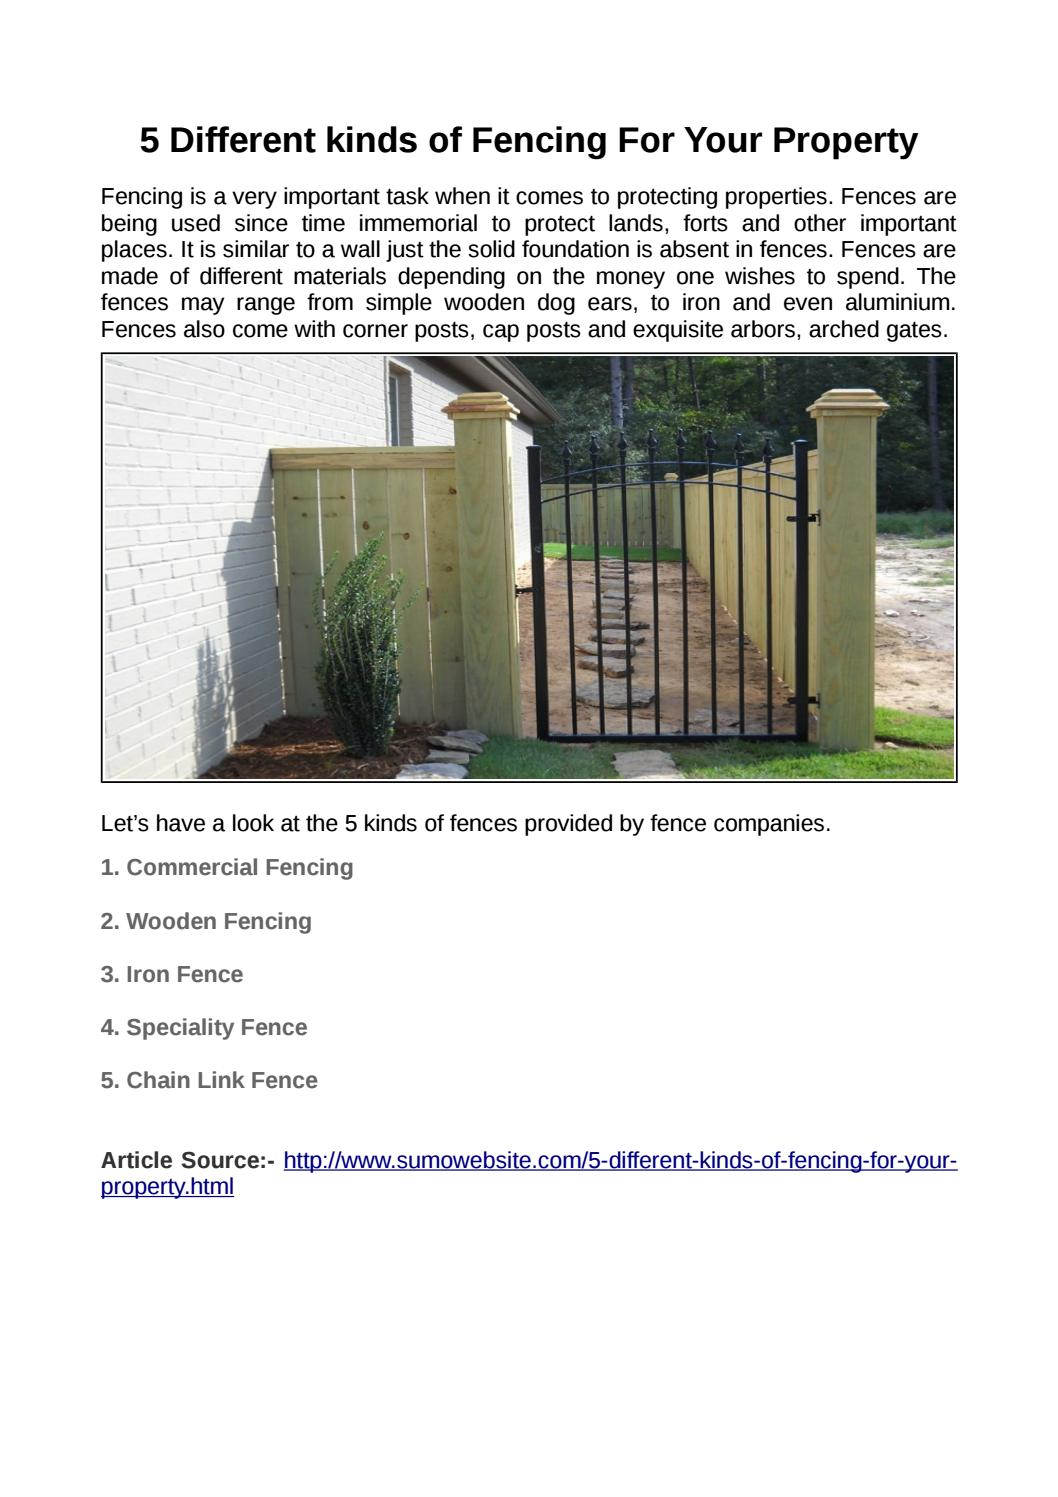 5 Different Kinds Of Fencing For Your Property By Ingle Fence Co Issuu